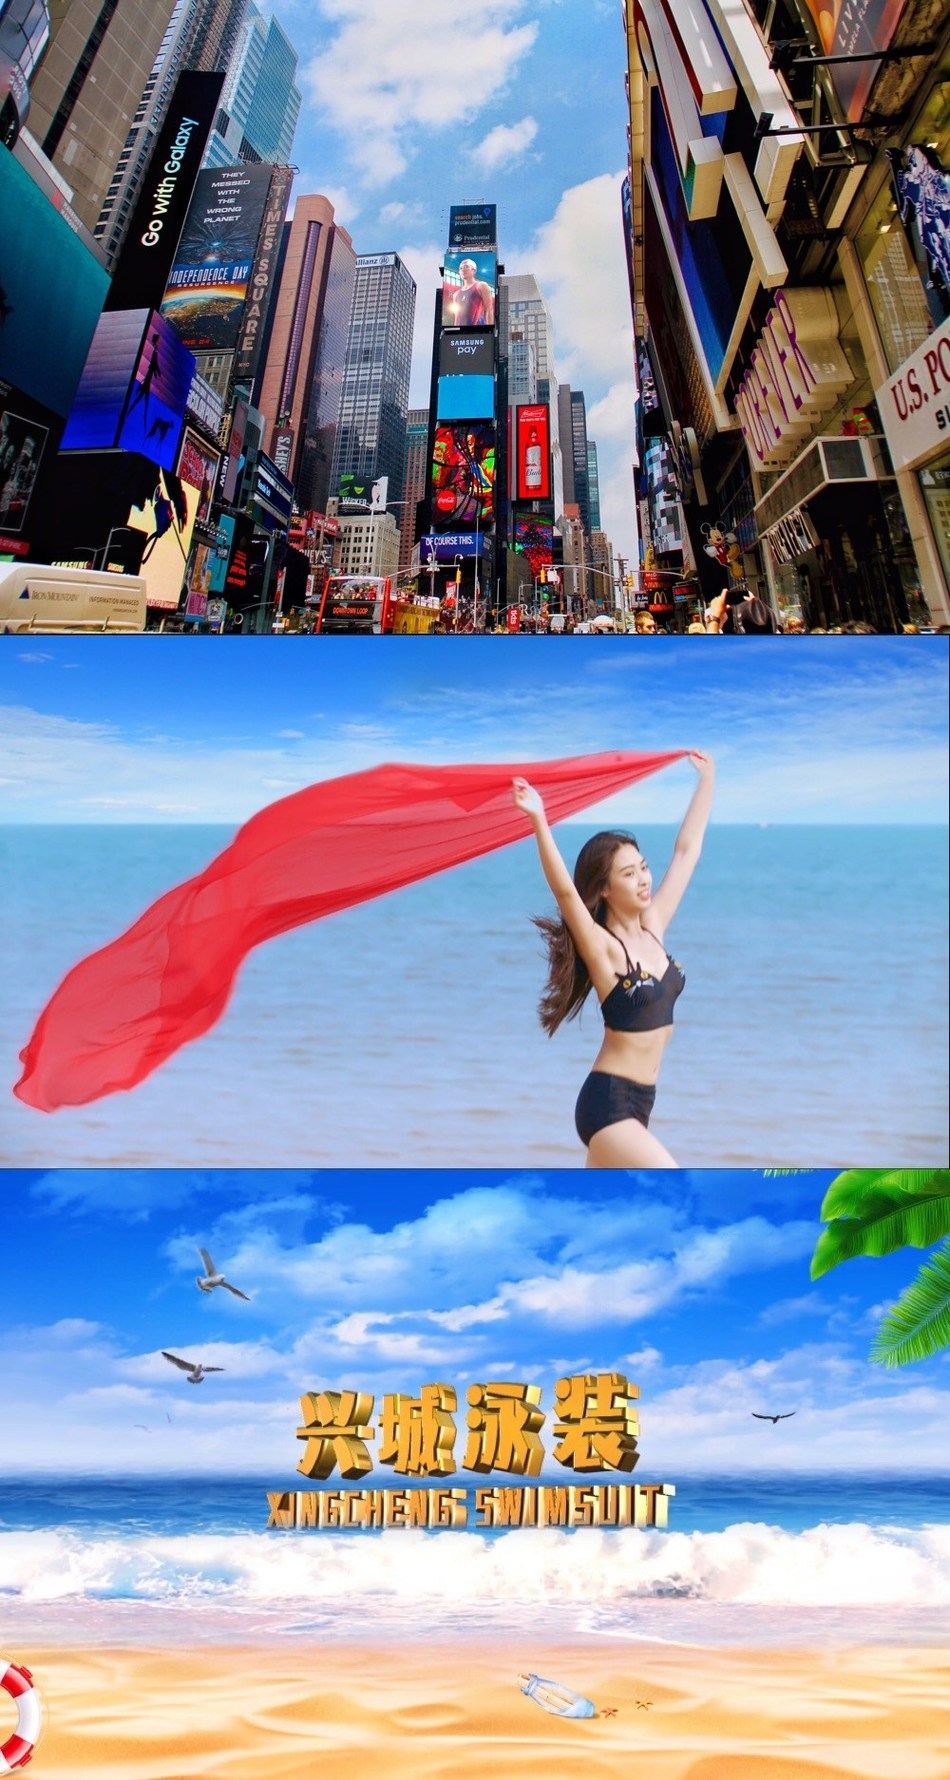 A video clip telling about Chinese swimsuit is broadcast at NYC Times Square.